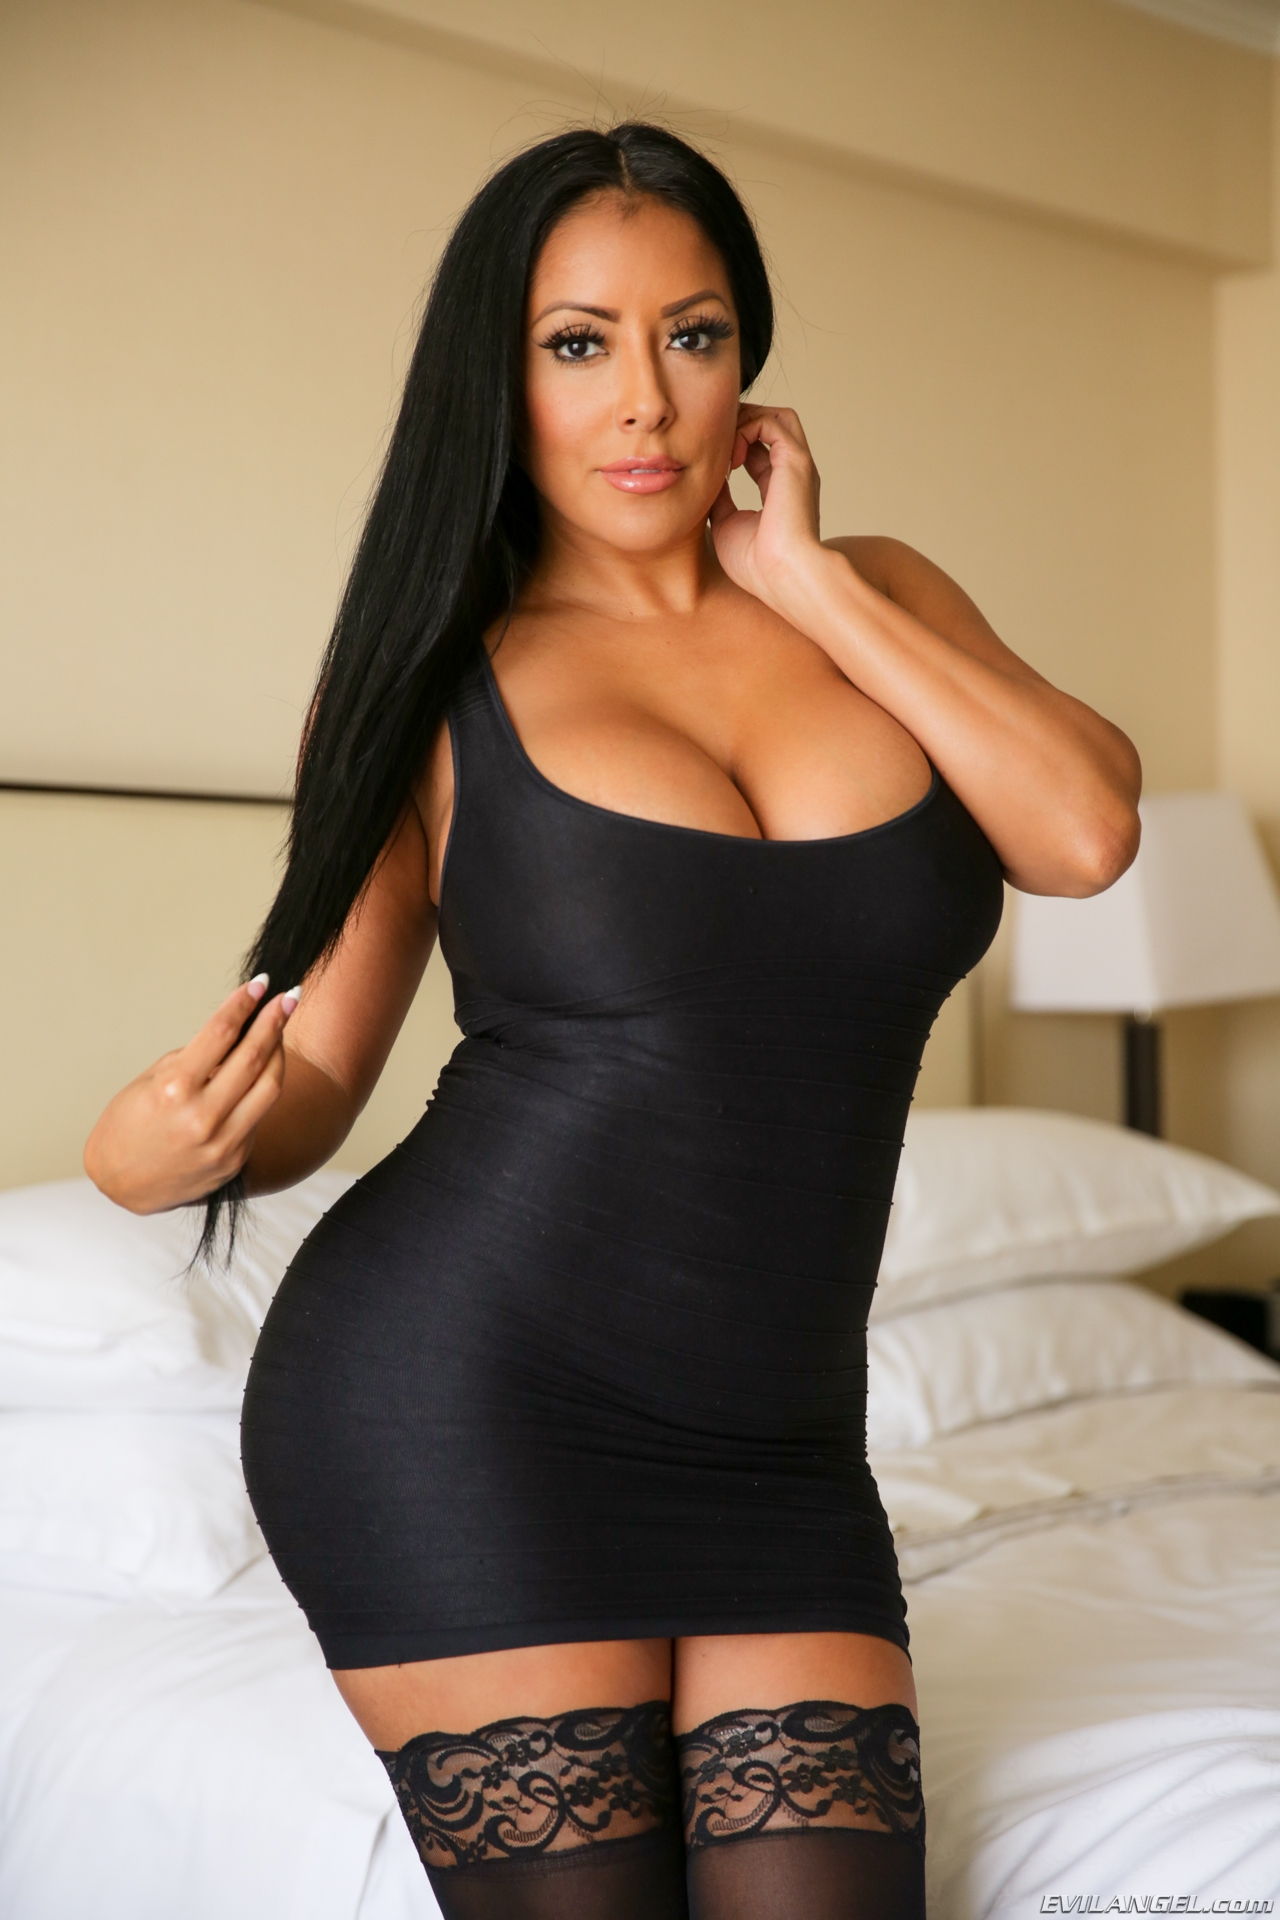 free porn of hot milfs Horny Milfs gagging for some fresh cocks, these milfs fuck for free in our free milf  porn.